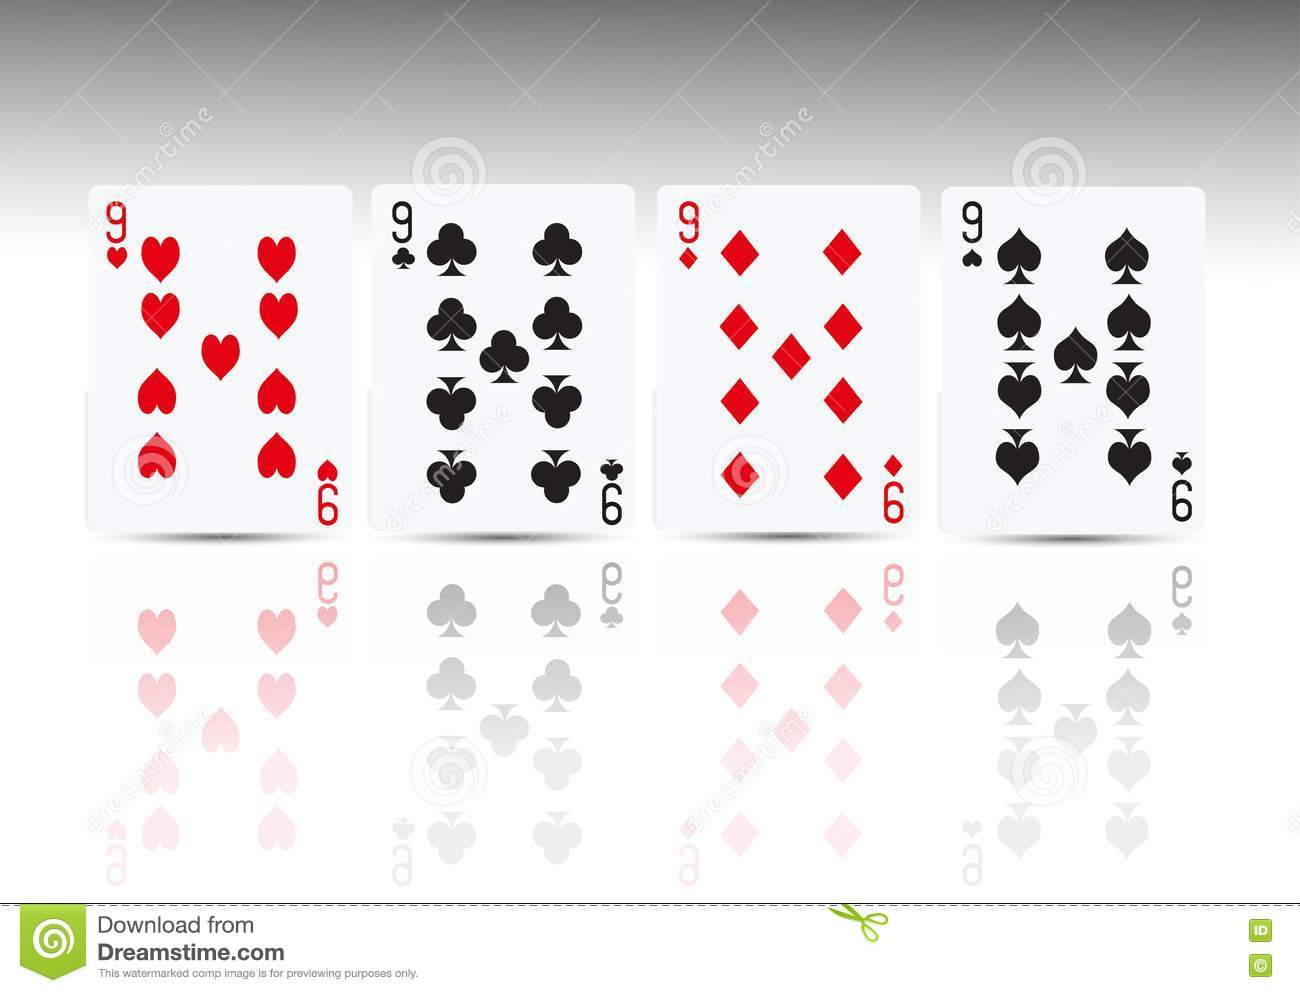 play 4 card poker online free